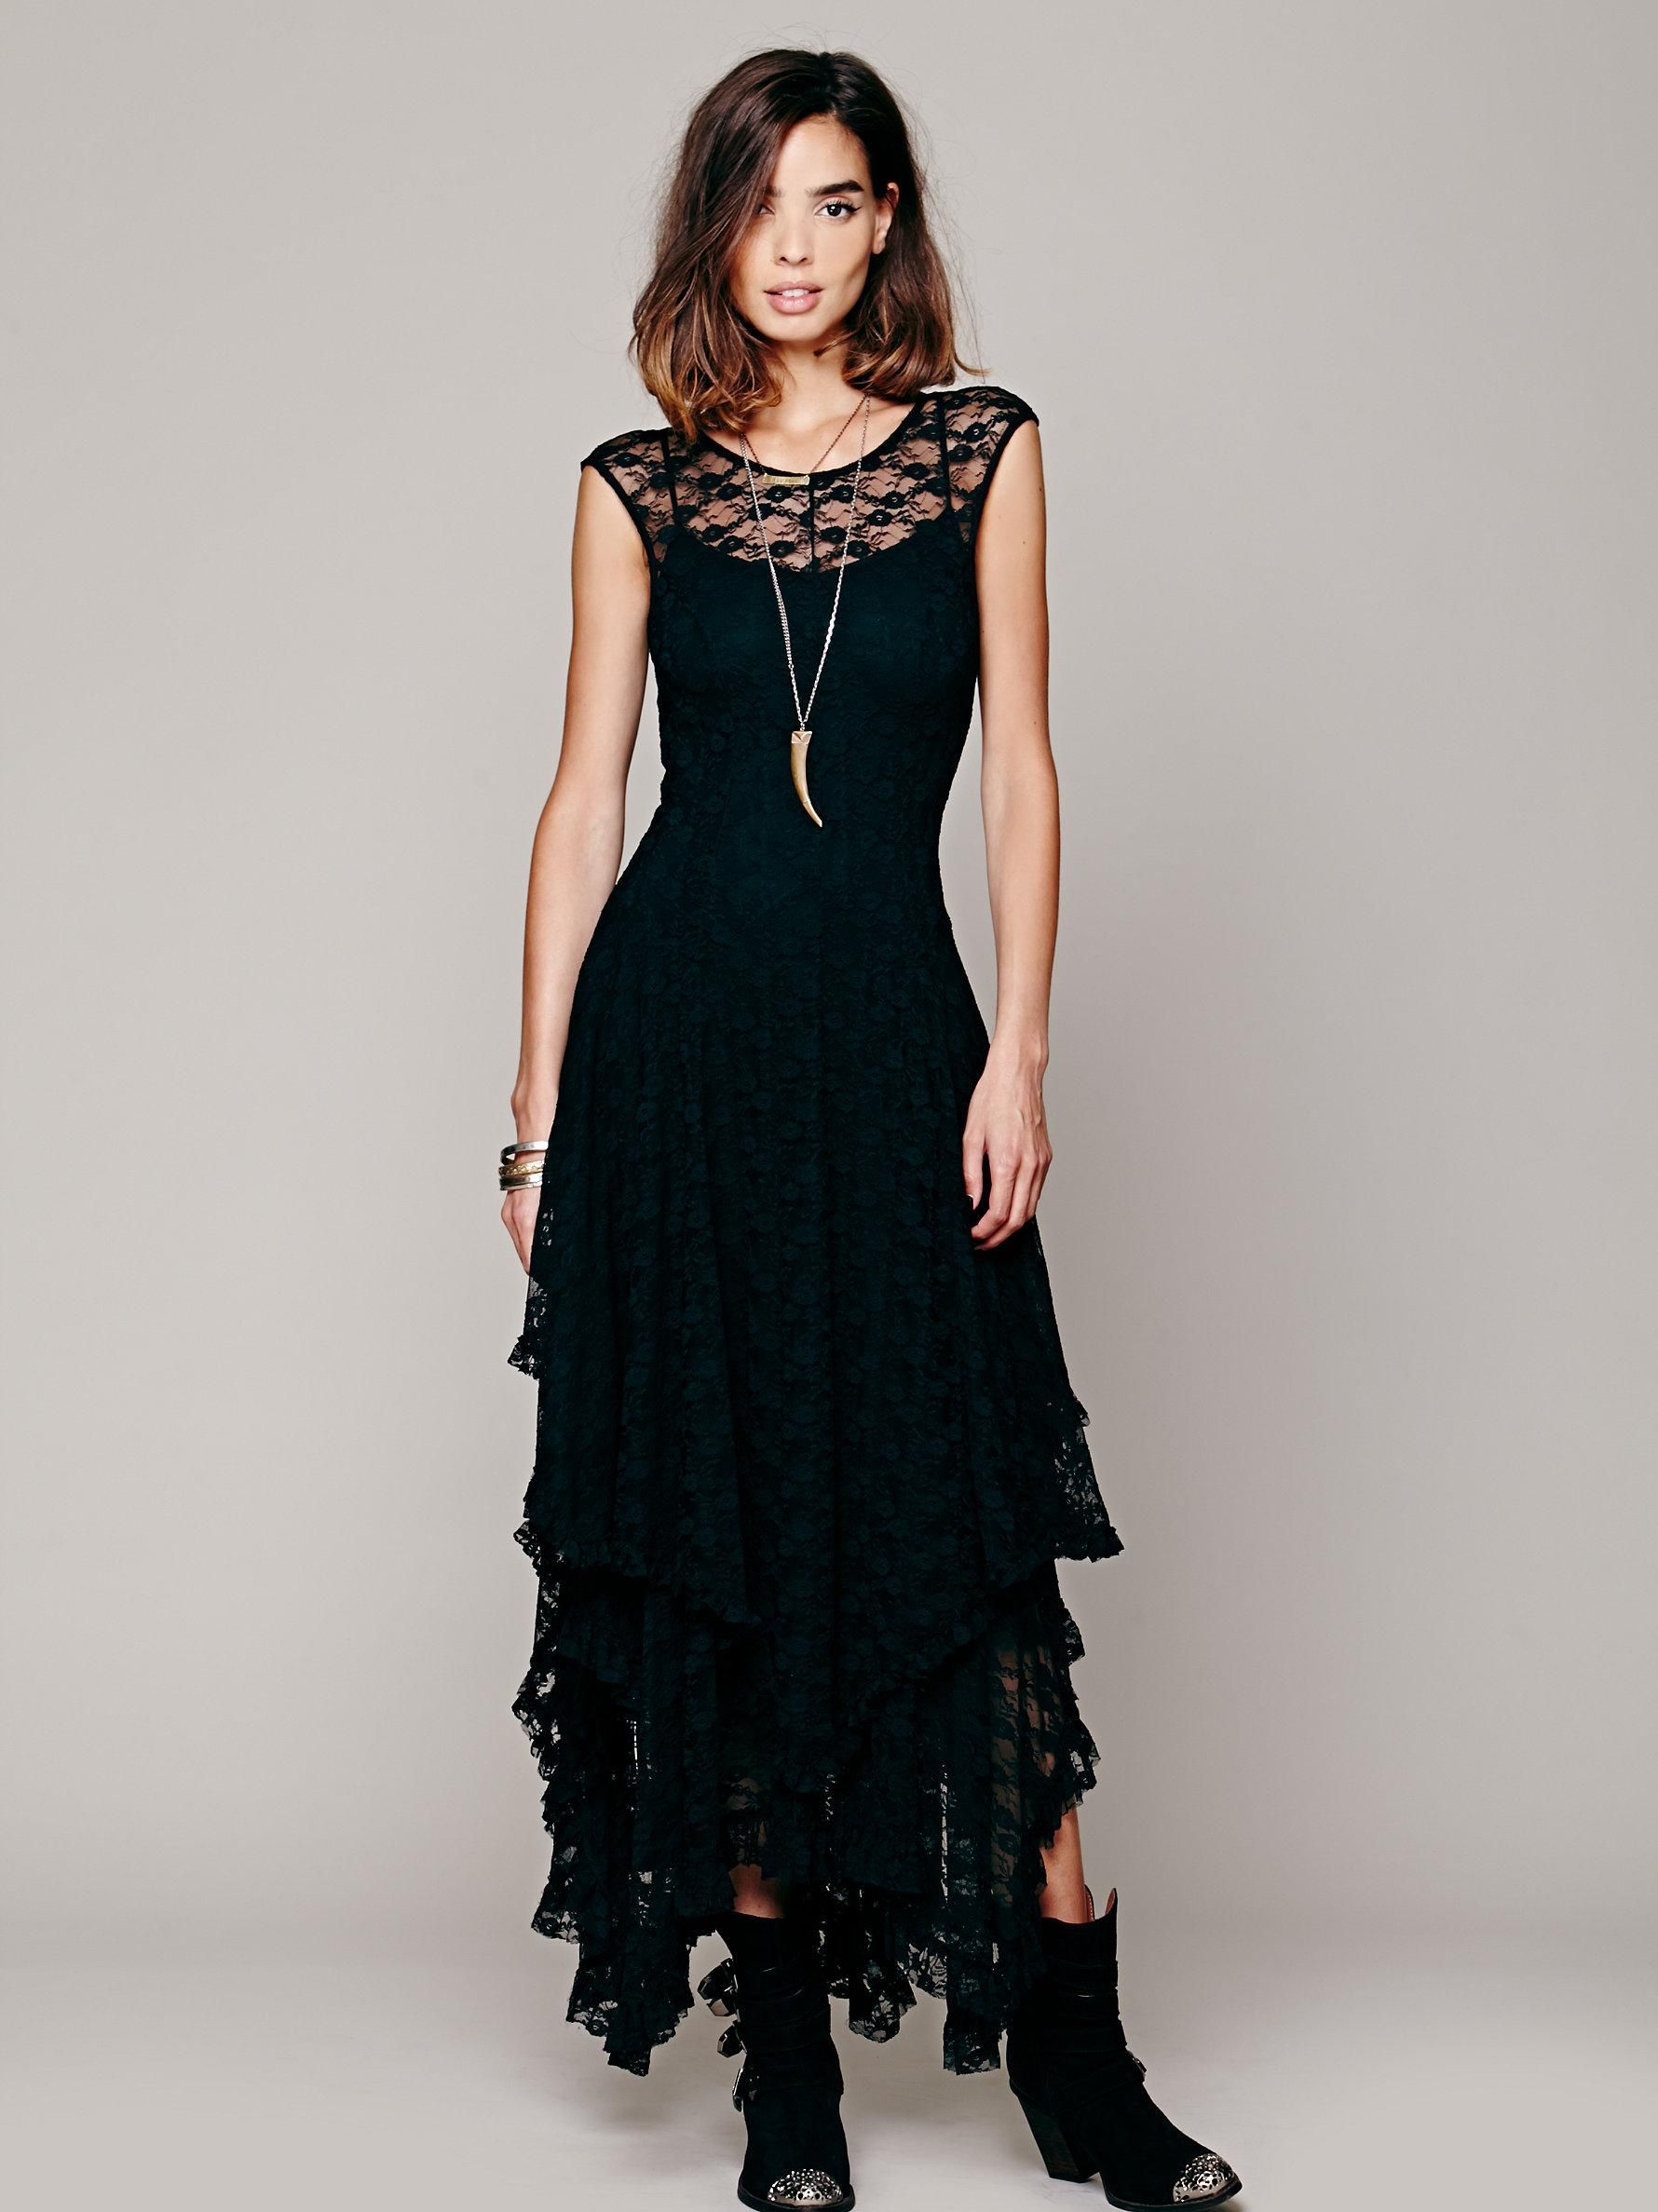 Free people intimately french courtship slip in black concert